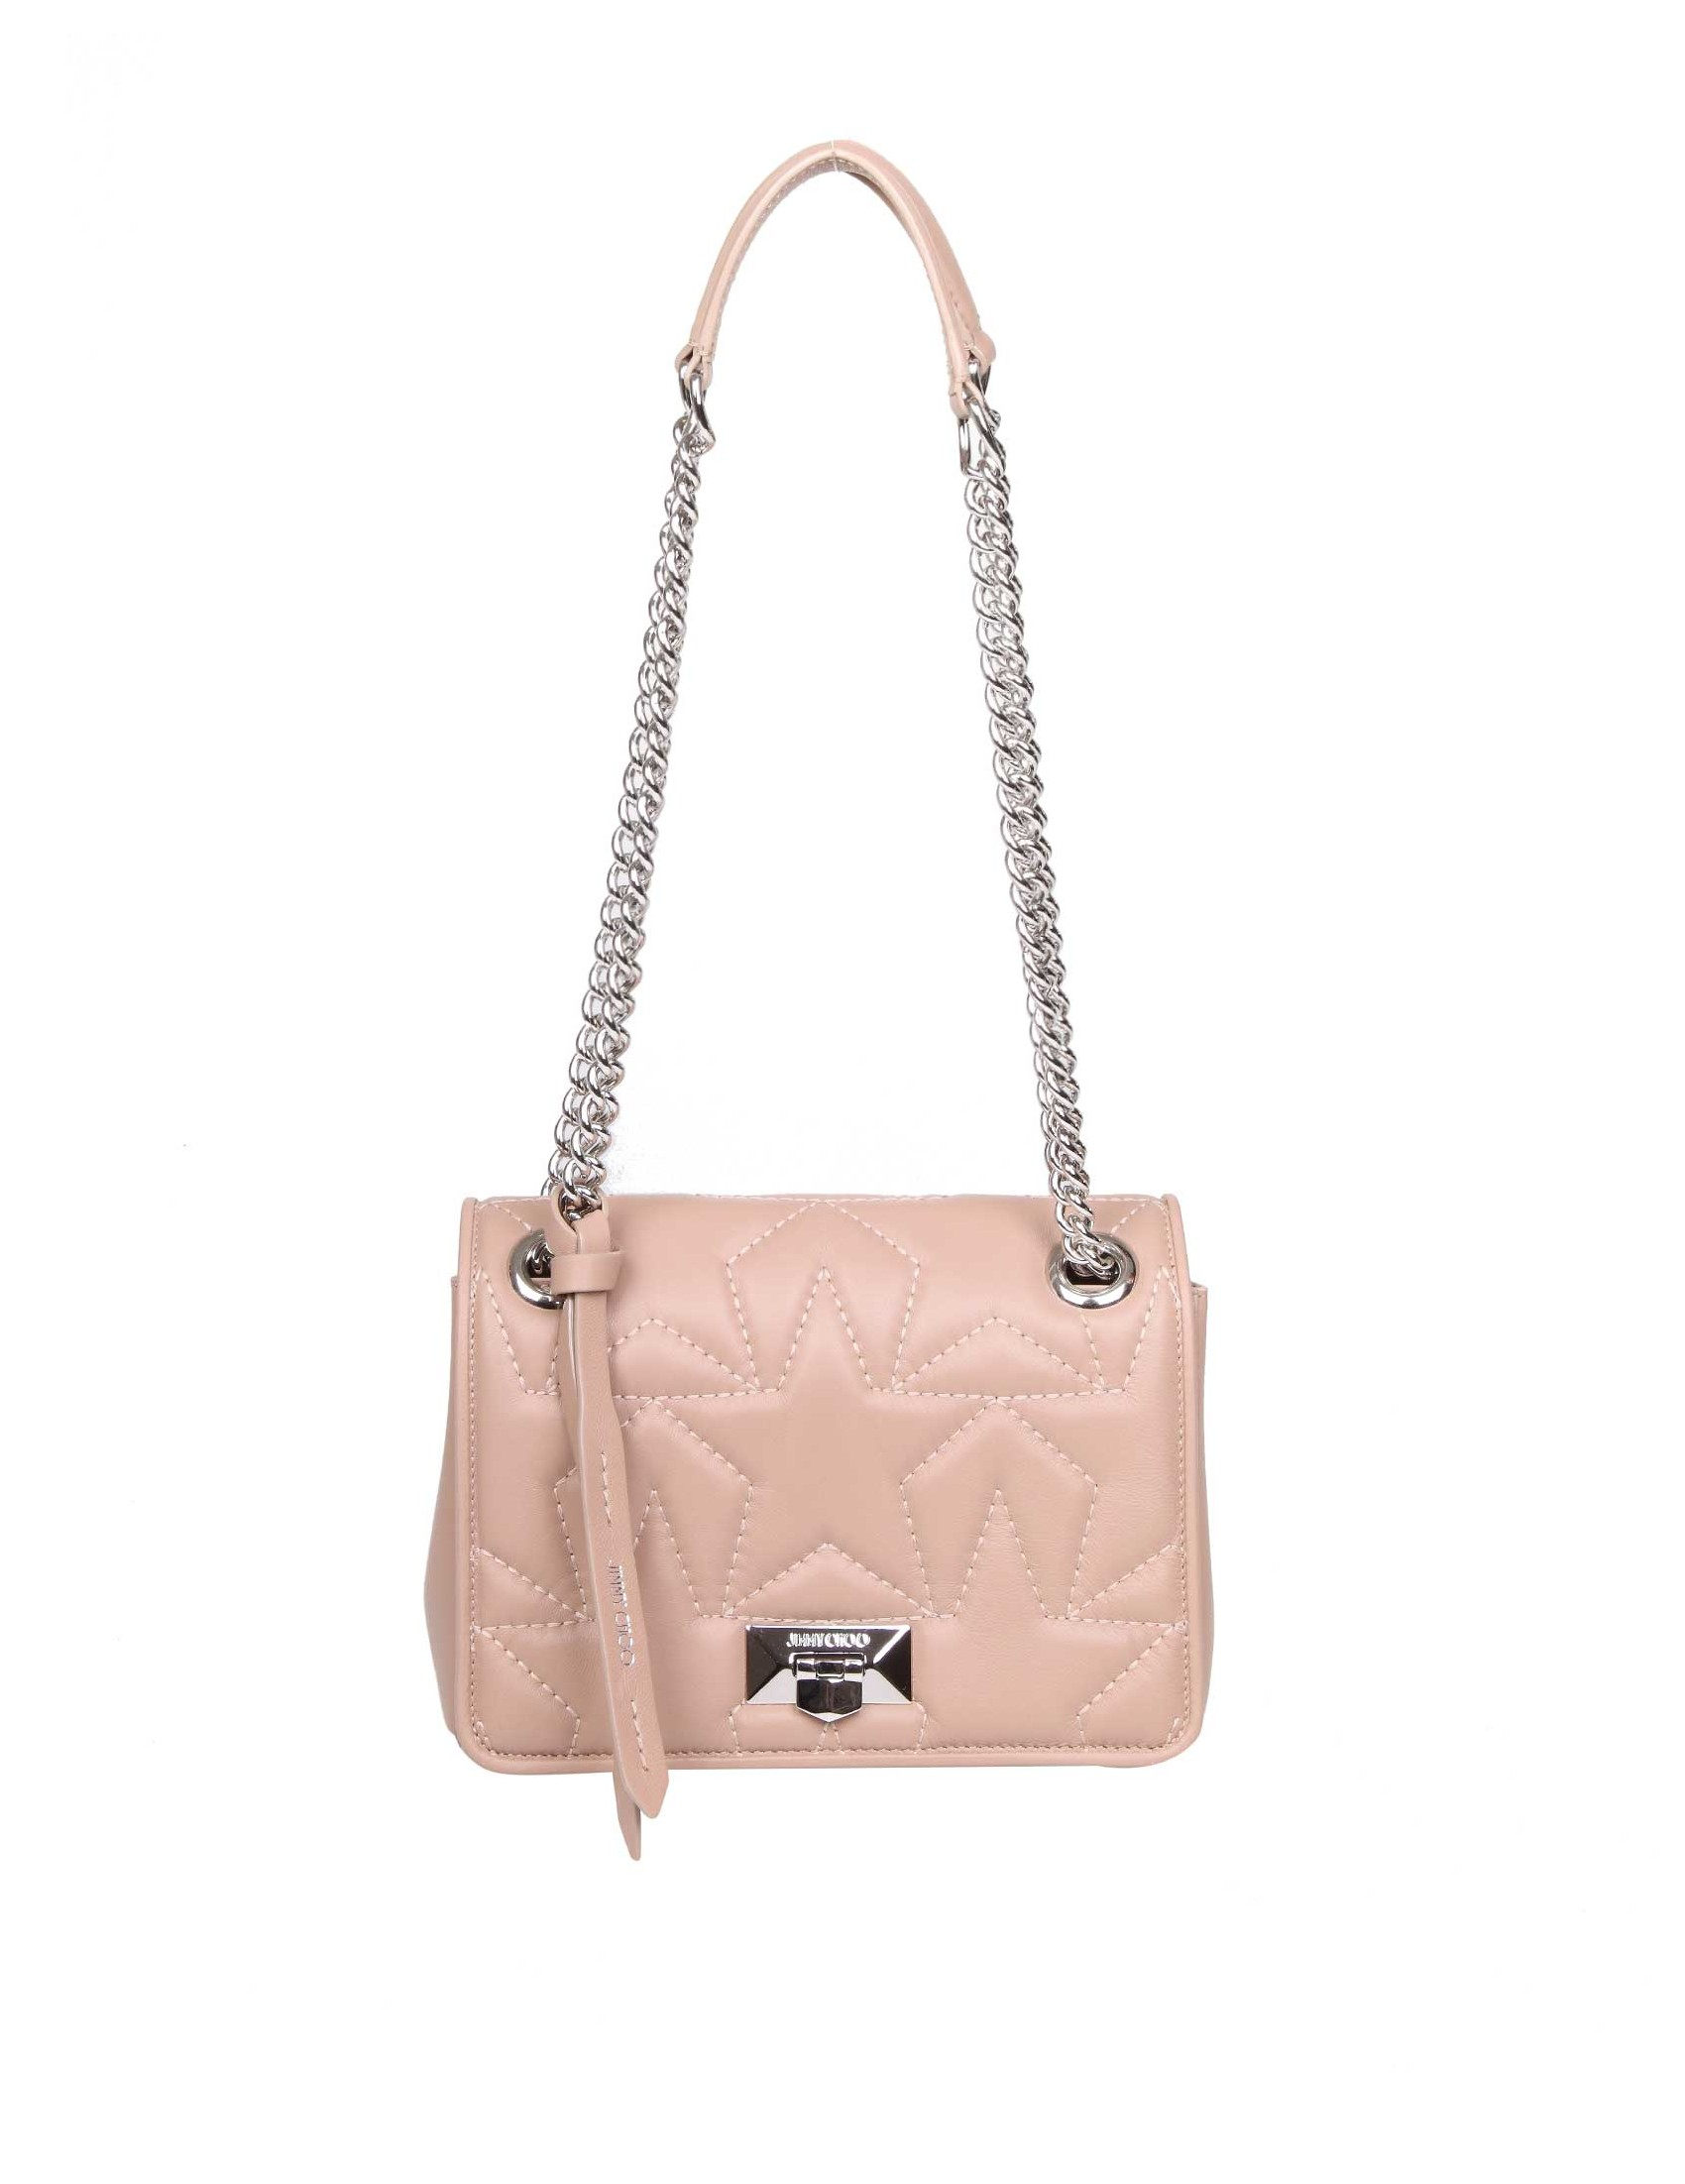 Shoulder strap in matelassé nappa leather. Pink color. Quilted star pattern  on the front. Interlocking closure. Adjustable chain shoulder strap 787a1d5f5bcb1